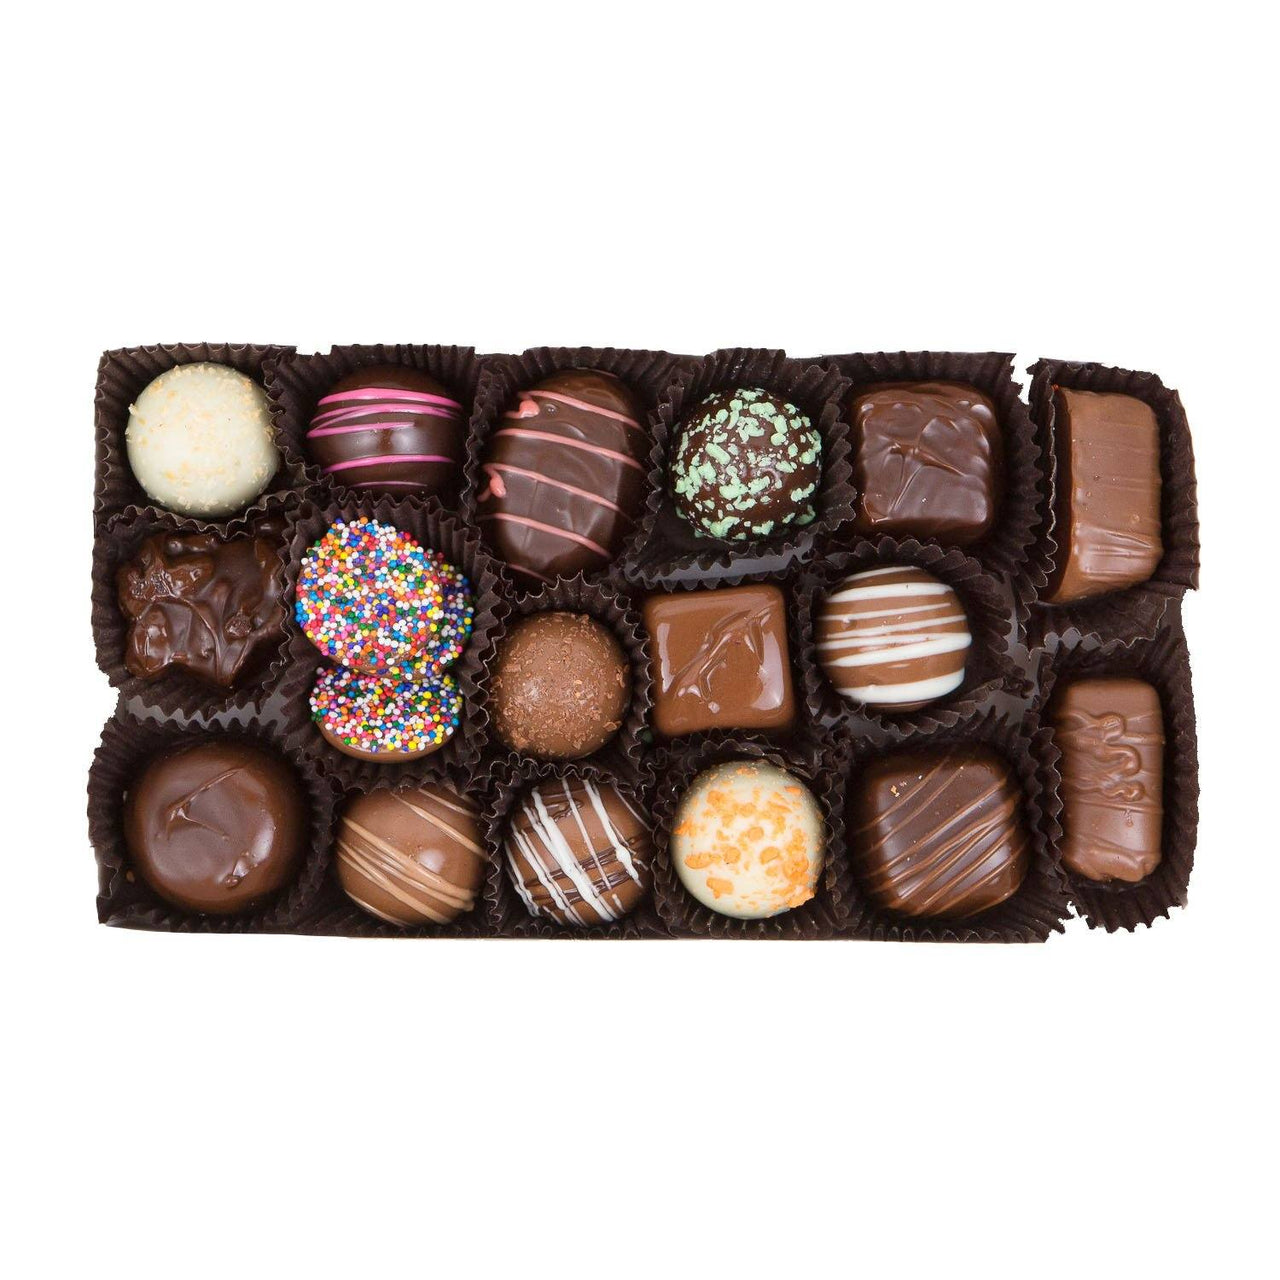 Gifts for Aunt - Assorted Chocolate Gift Box - Jackie's Chocolate